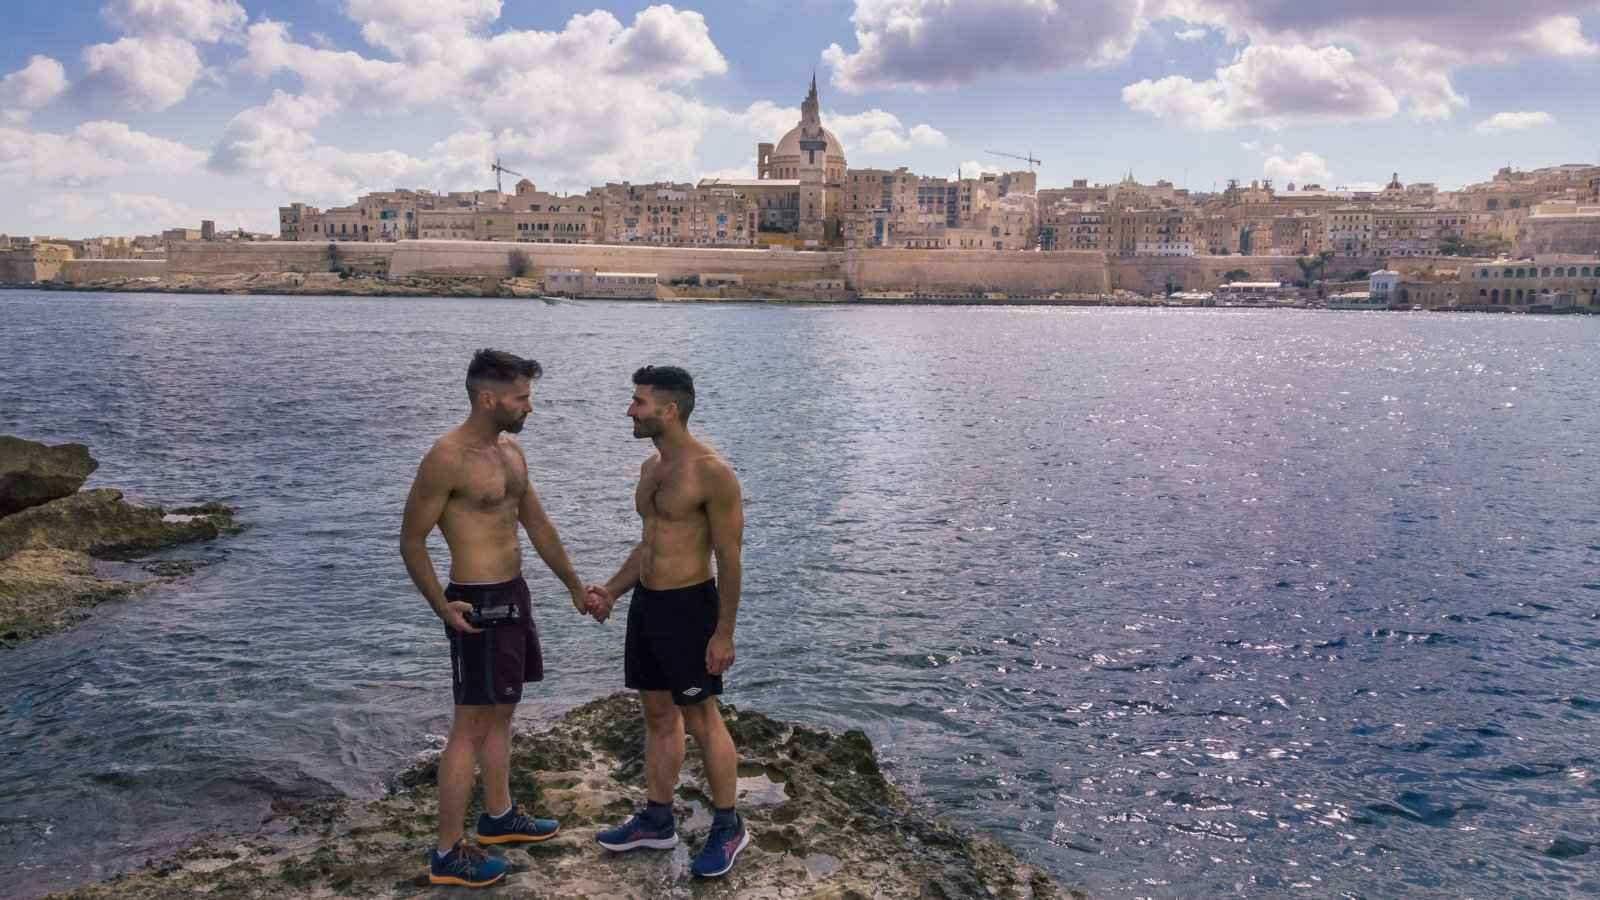 There are a few secluded gay beaches in Malta for private sunbathing or even some discreet nudity